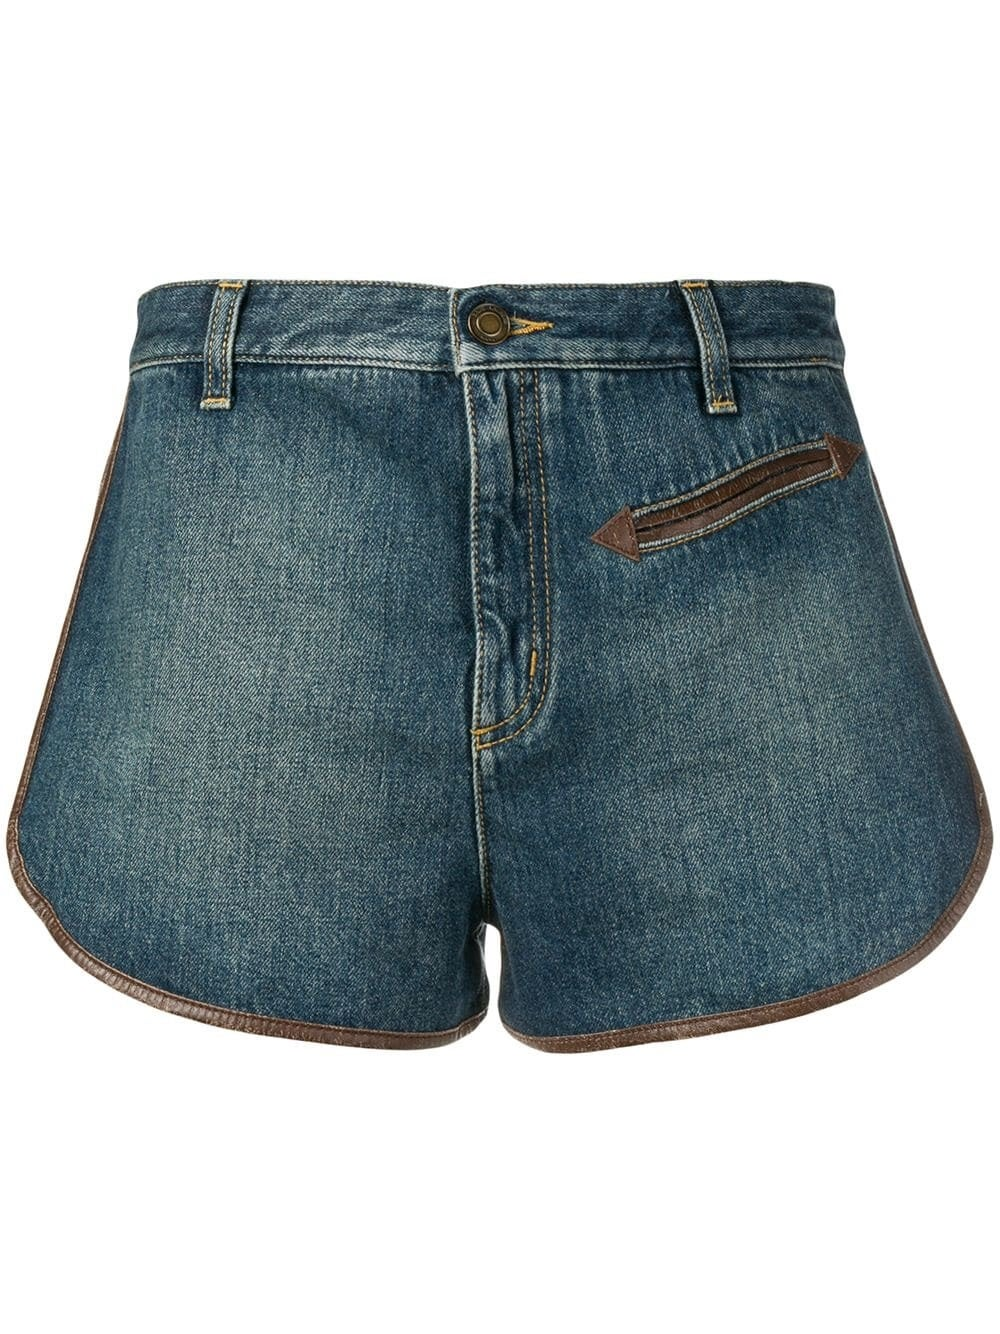 Blue Contrast Piping Denim Shorts